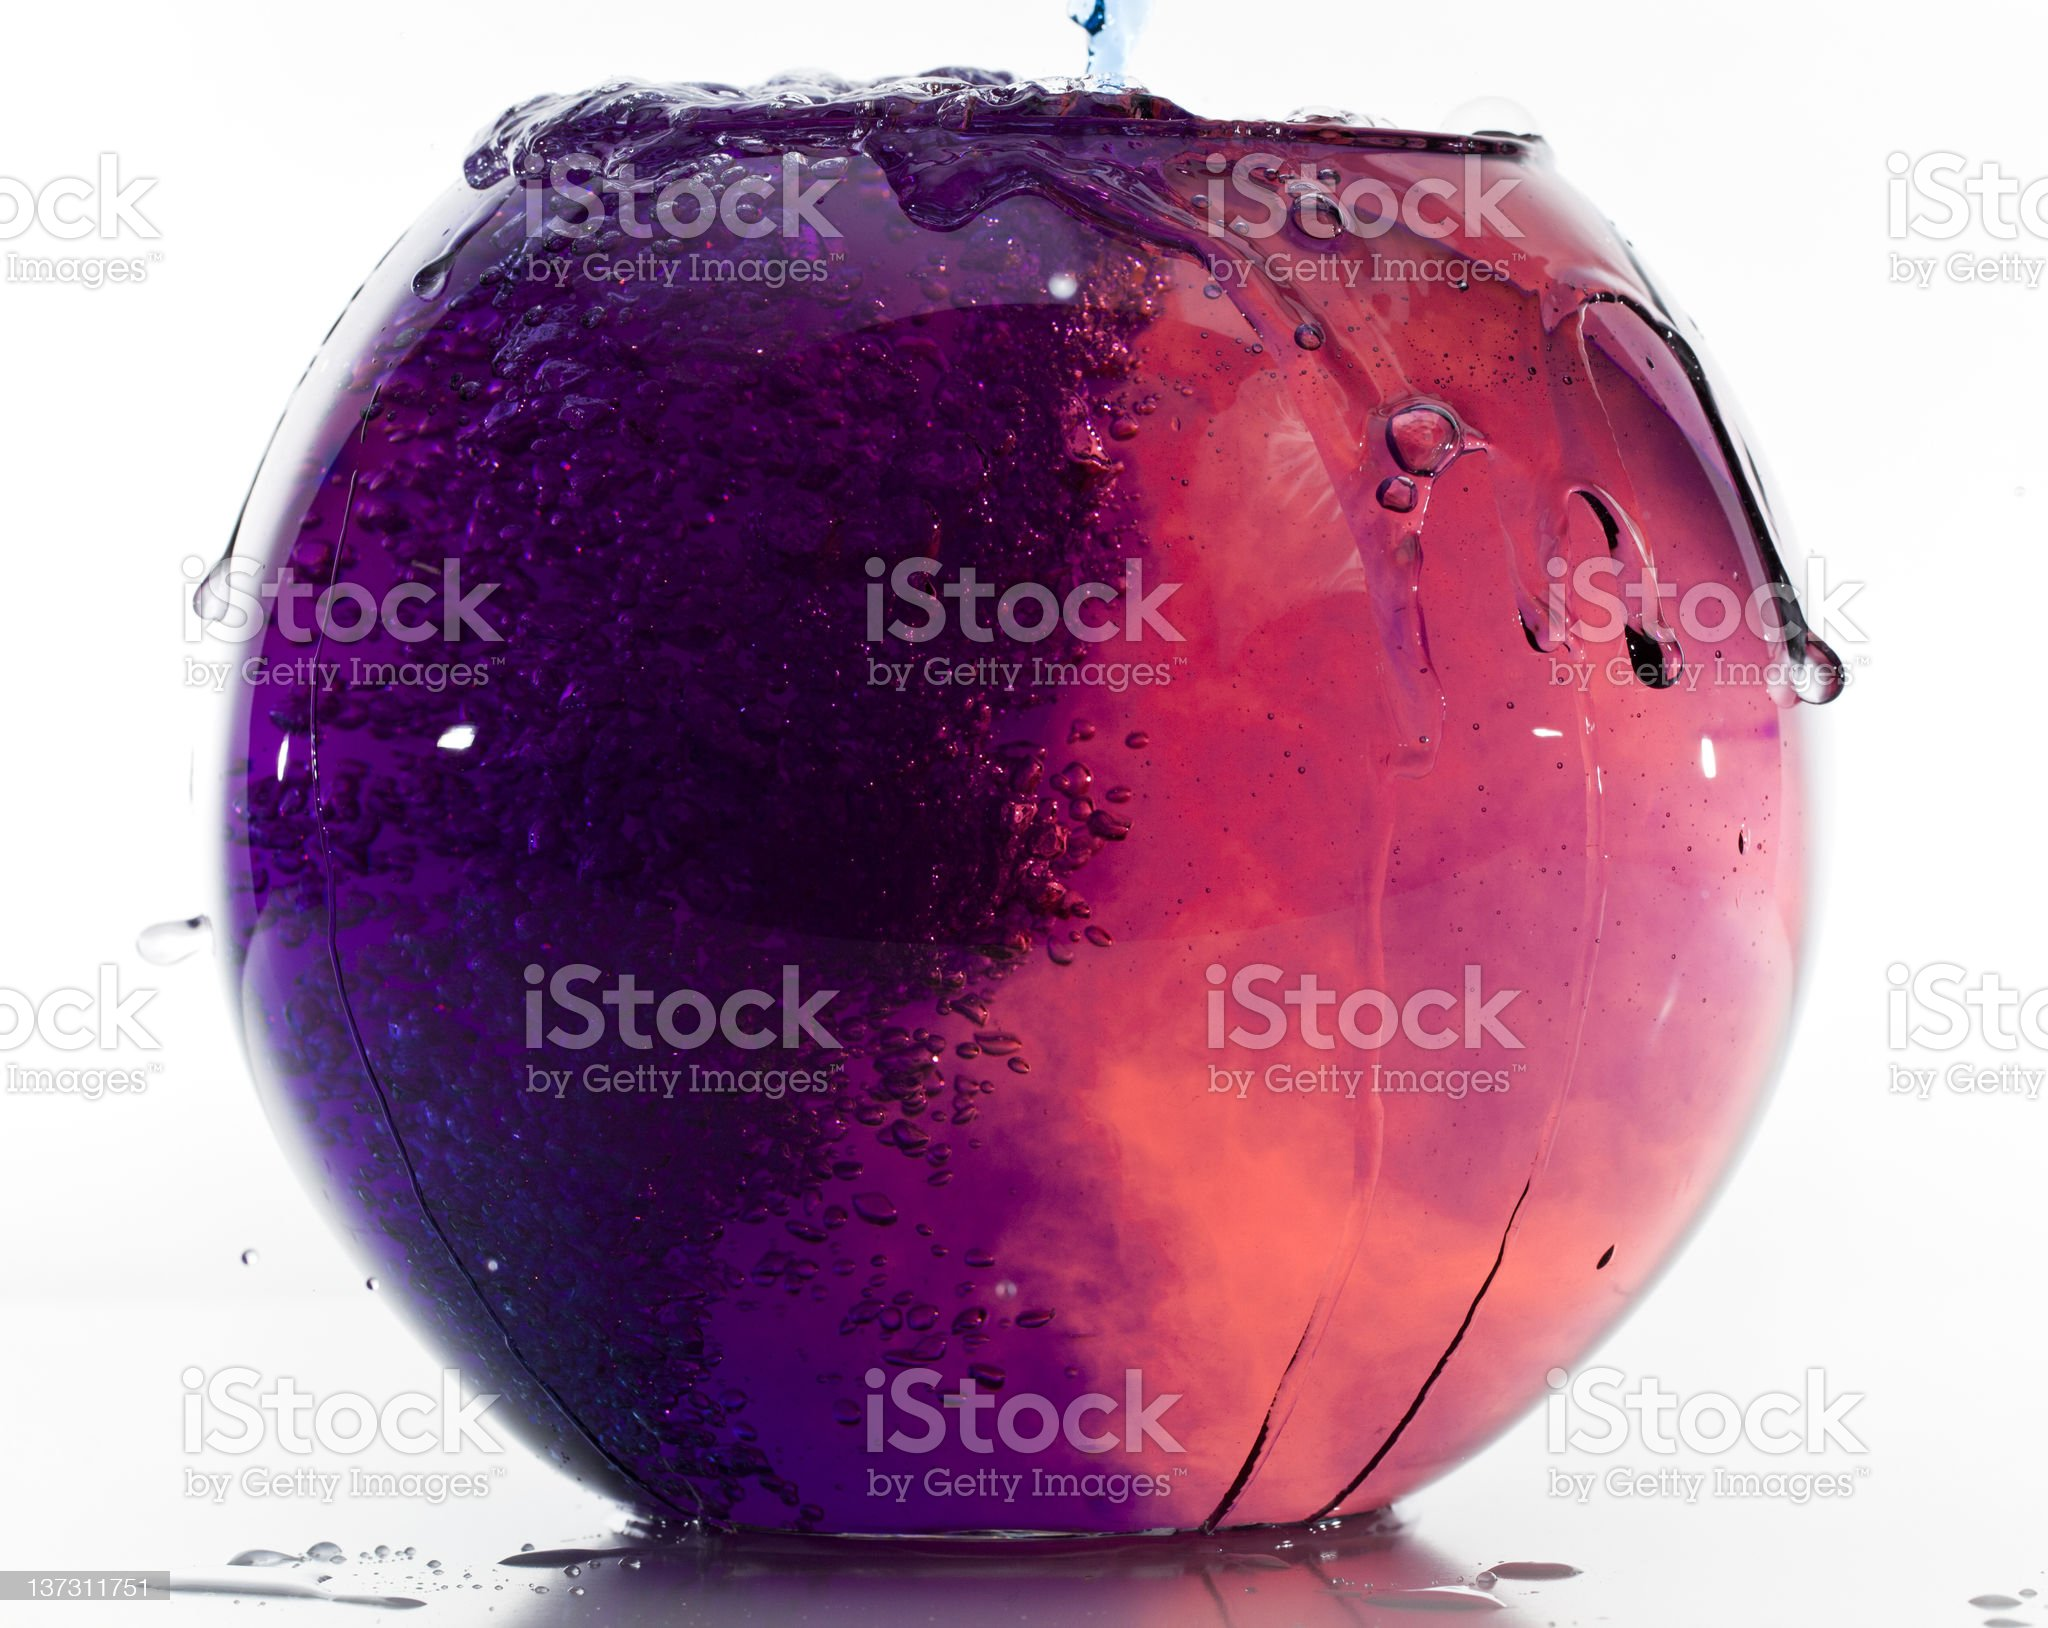 Fishtank with mixed colored water royalty-free stock photo